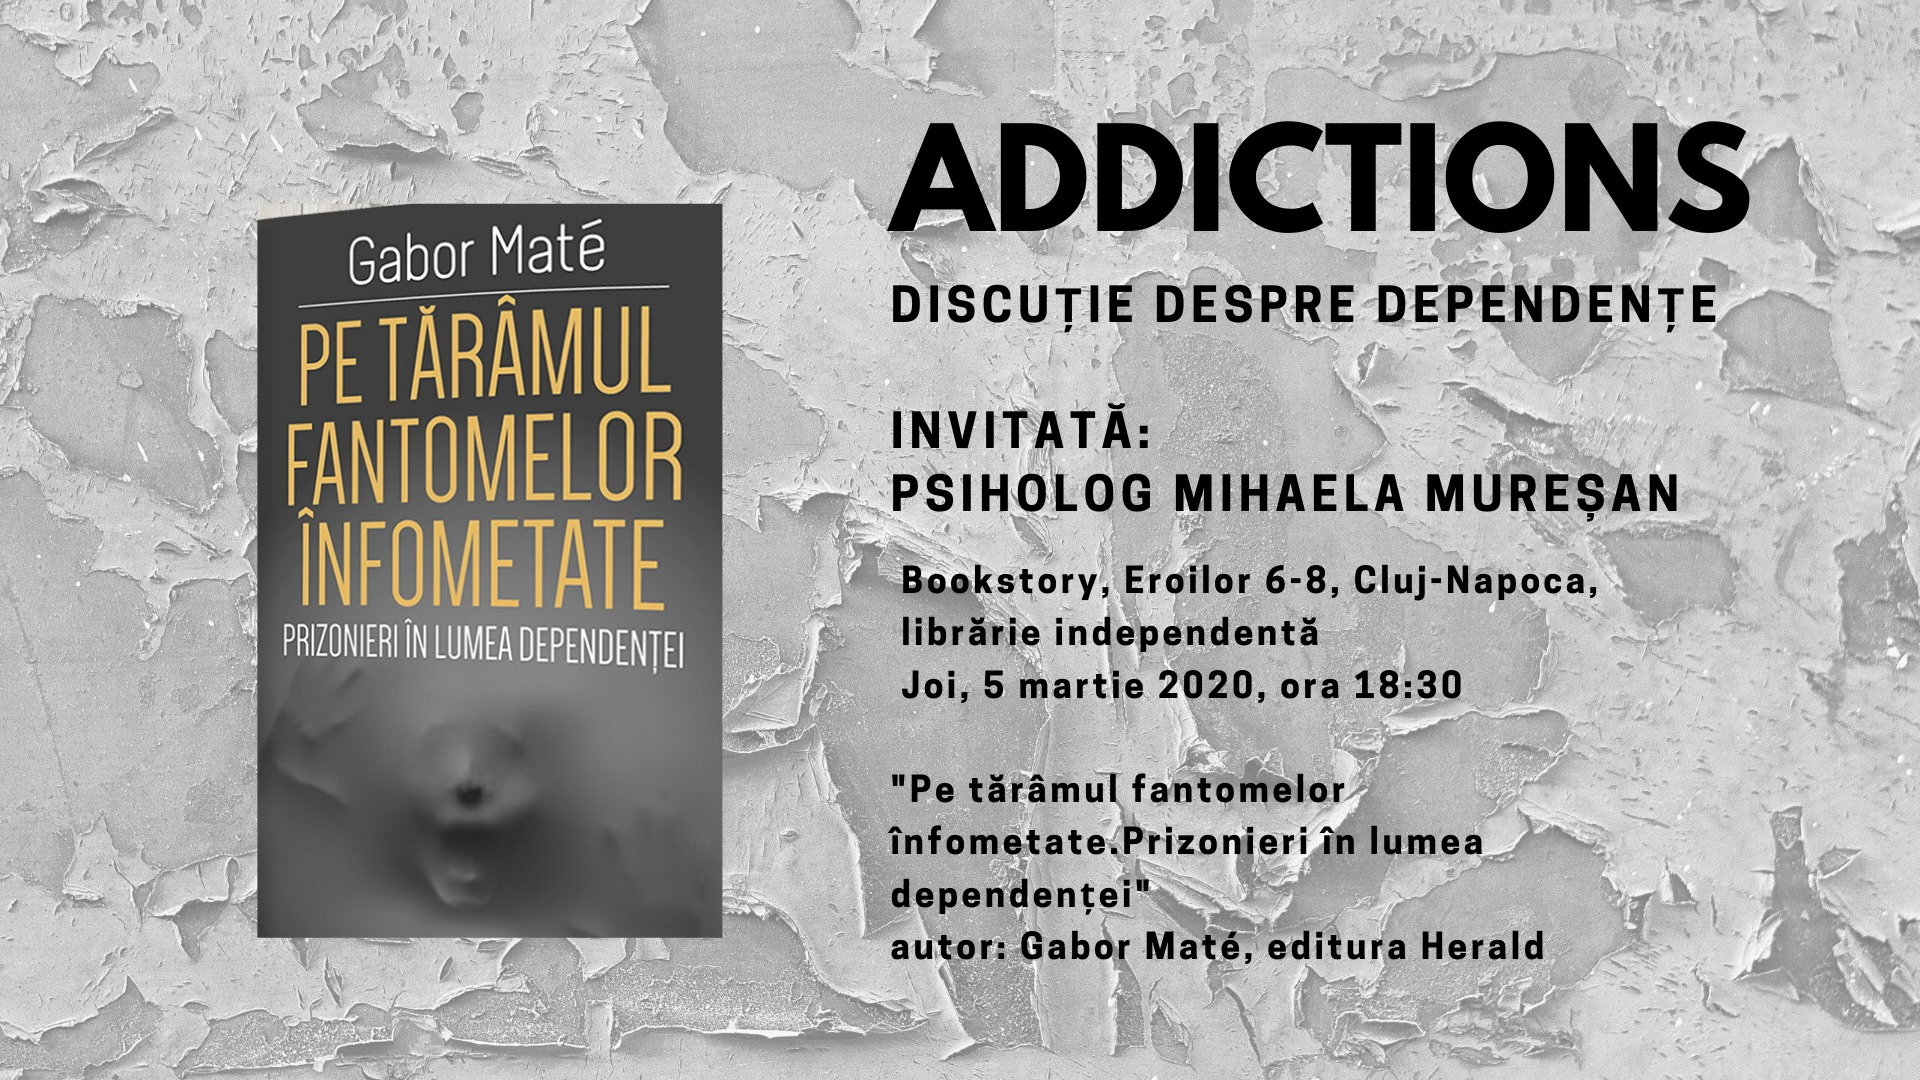 Addictions: Discuție despre dependențe @ Bookstory